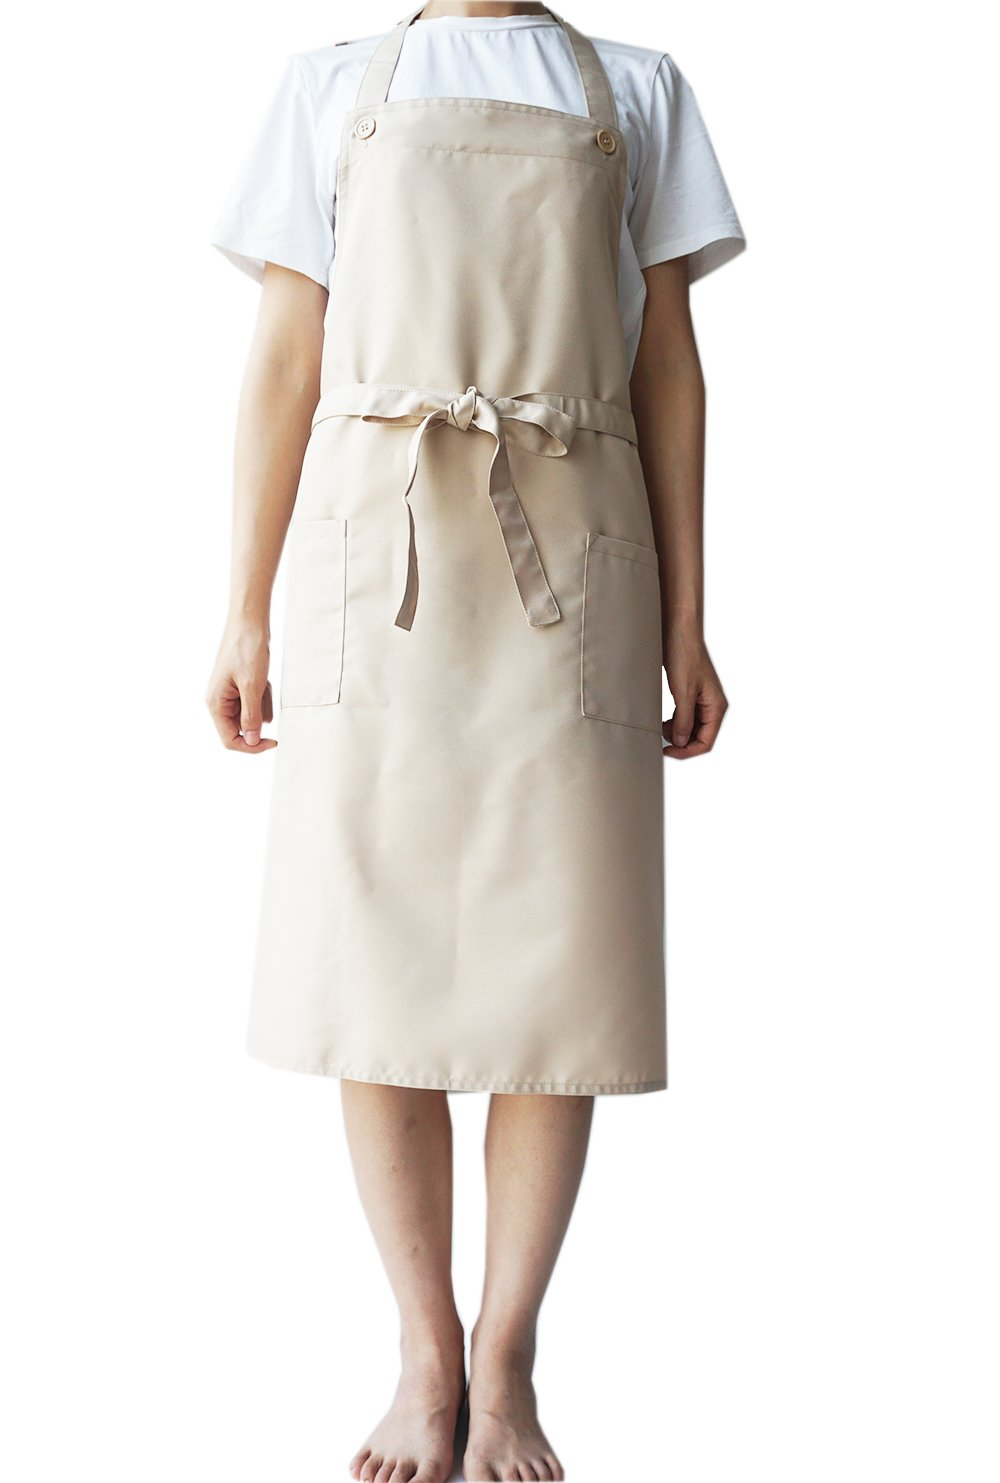 """Prima Apron for Men & Women, Adjustable Button Plain Long Apron with Pockets & Long Ties, Kitchen Apron for Cooking, Baking,Pottery, Painting, Gardening, BBQ, Beauty Salon, H 32"""" x W 36""""(Beige)"""